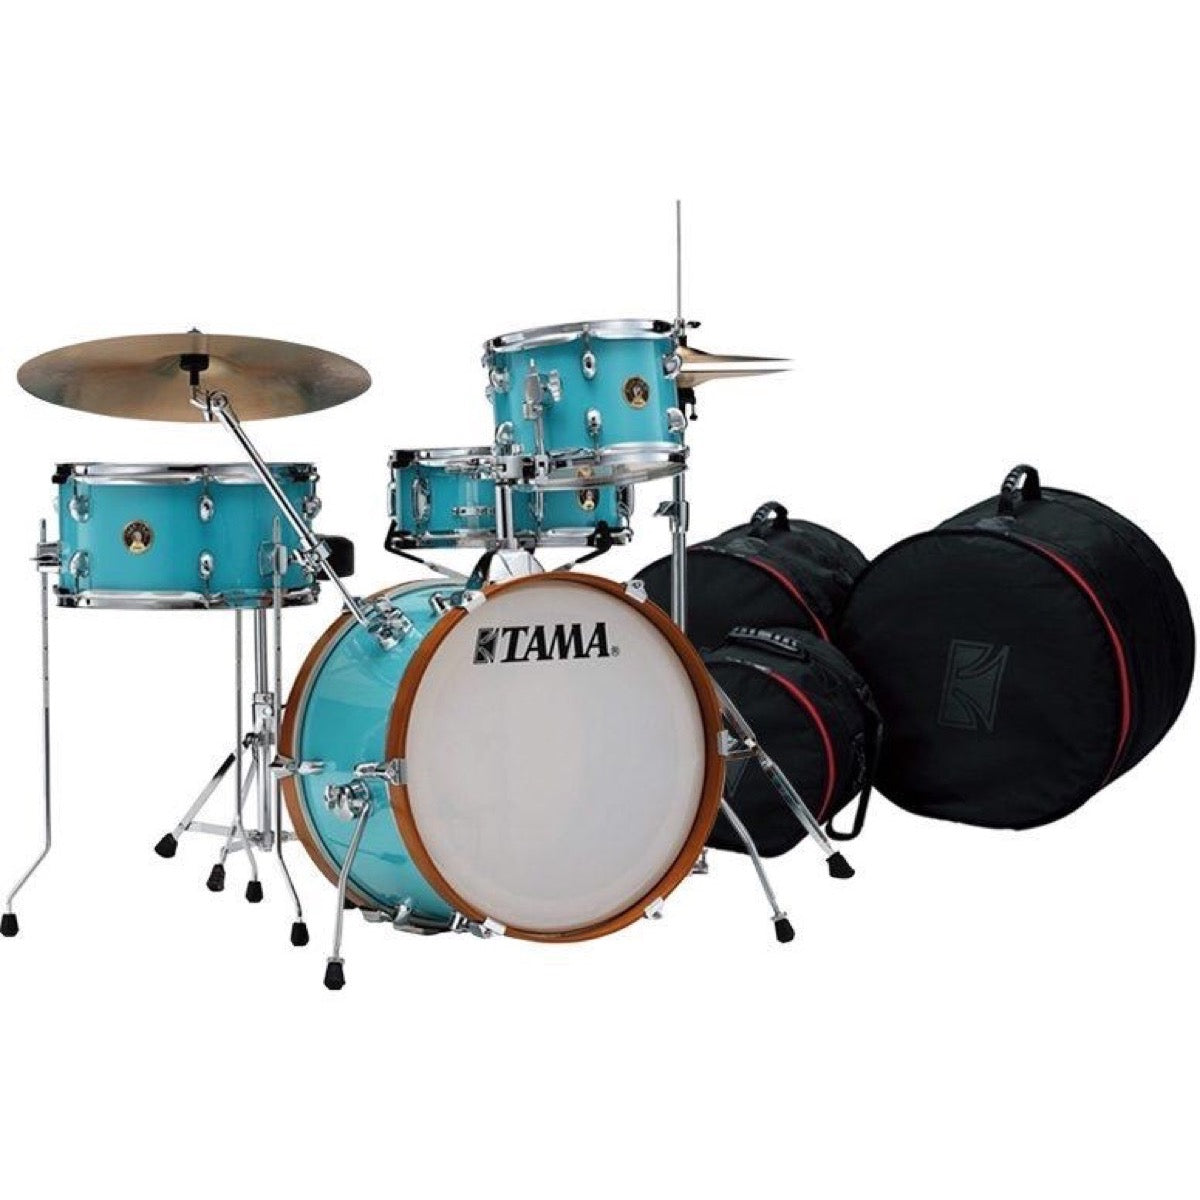 Tama Club Jam Drum Shell Kit, 4-Piece, Aqua Blue, with Drum Bags